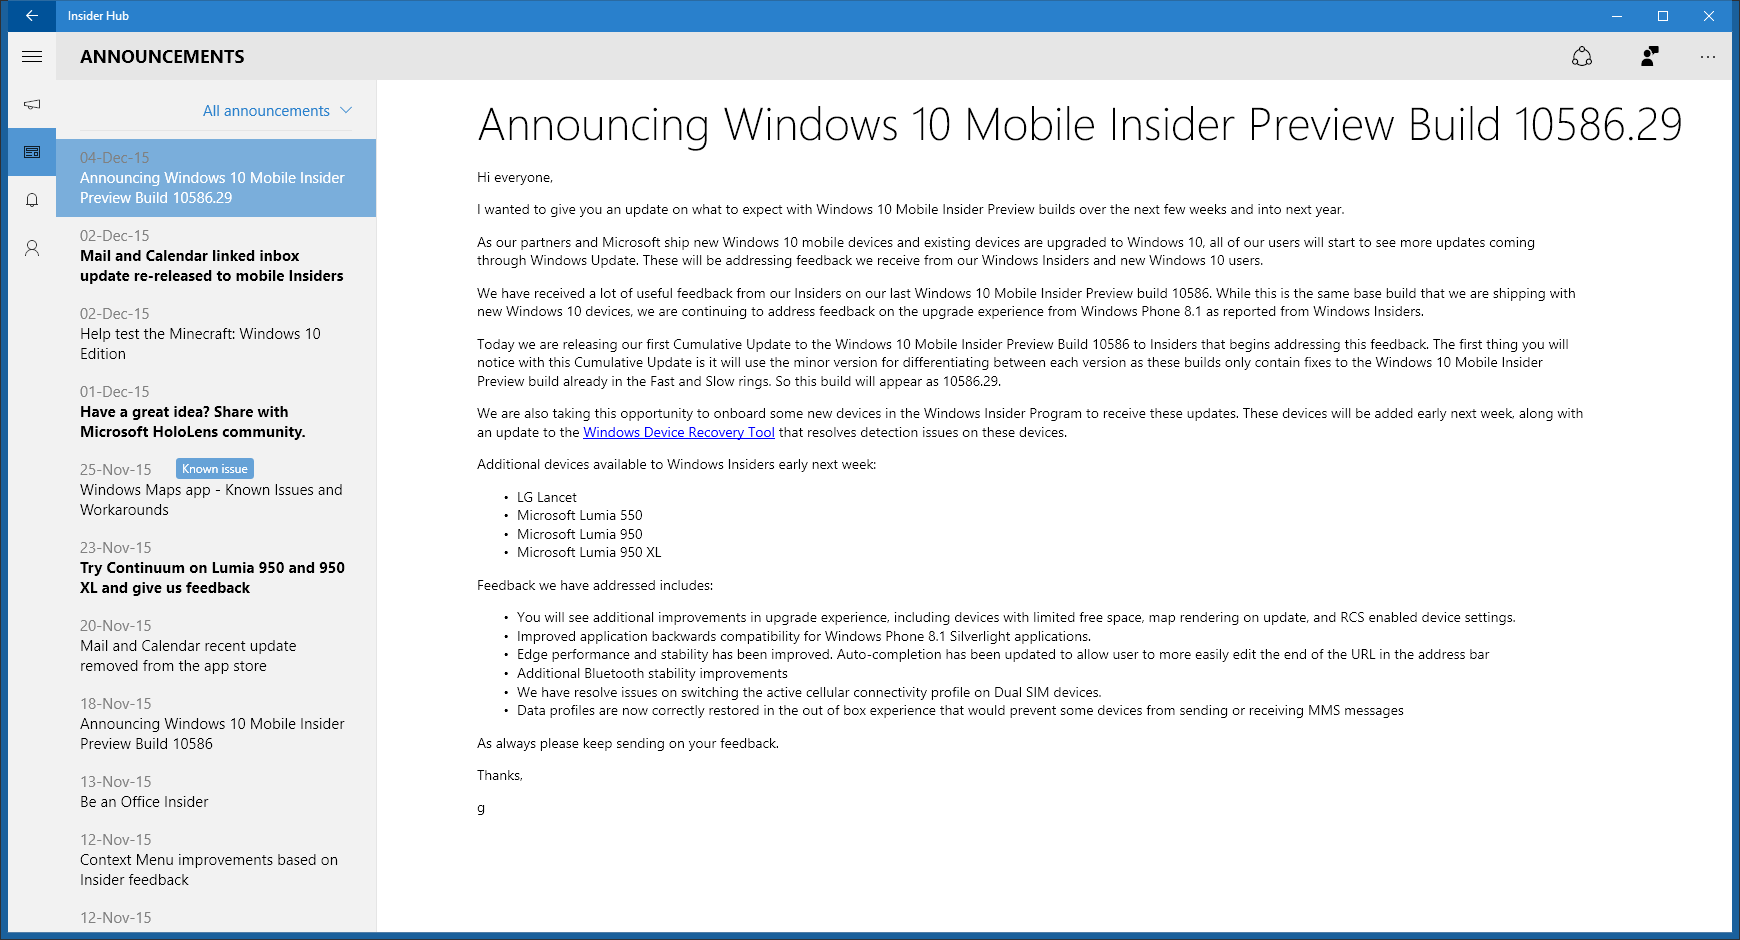 Windows 10 Mobile Insider Preview for Phones - Update to - Windows 10 ...